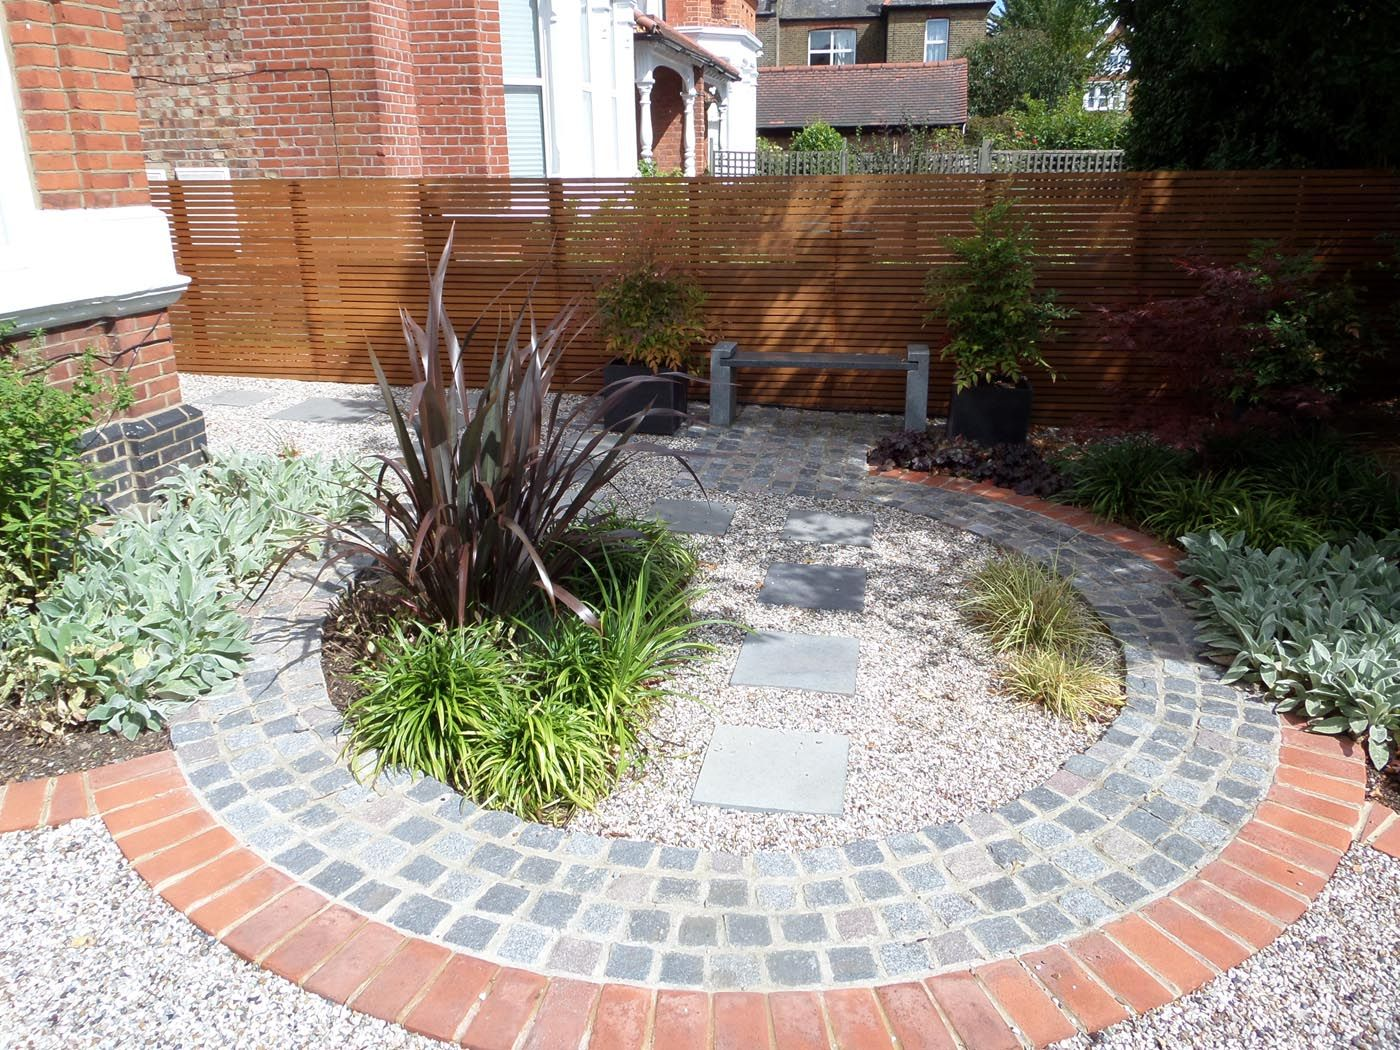 Gallery Urbanscaping UK Patio, Outdoor decor, Outdoor